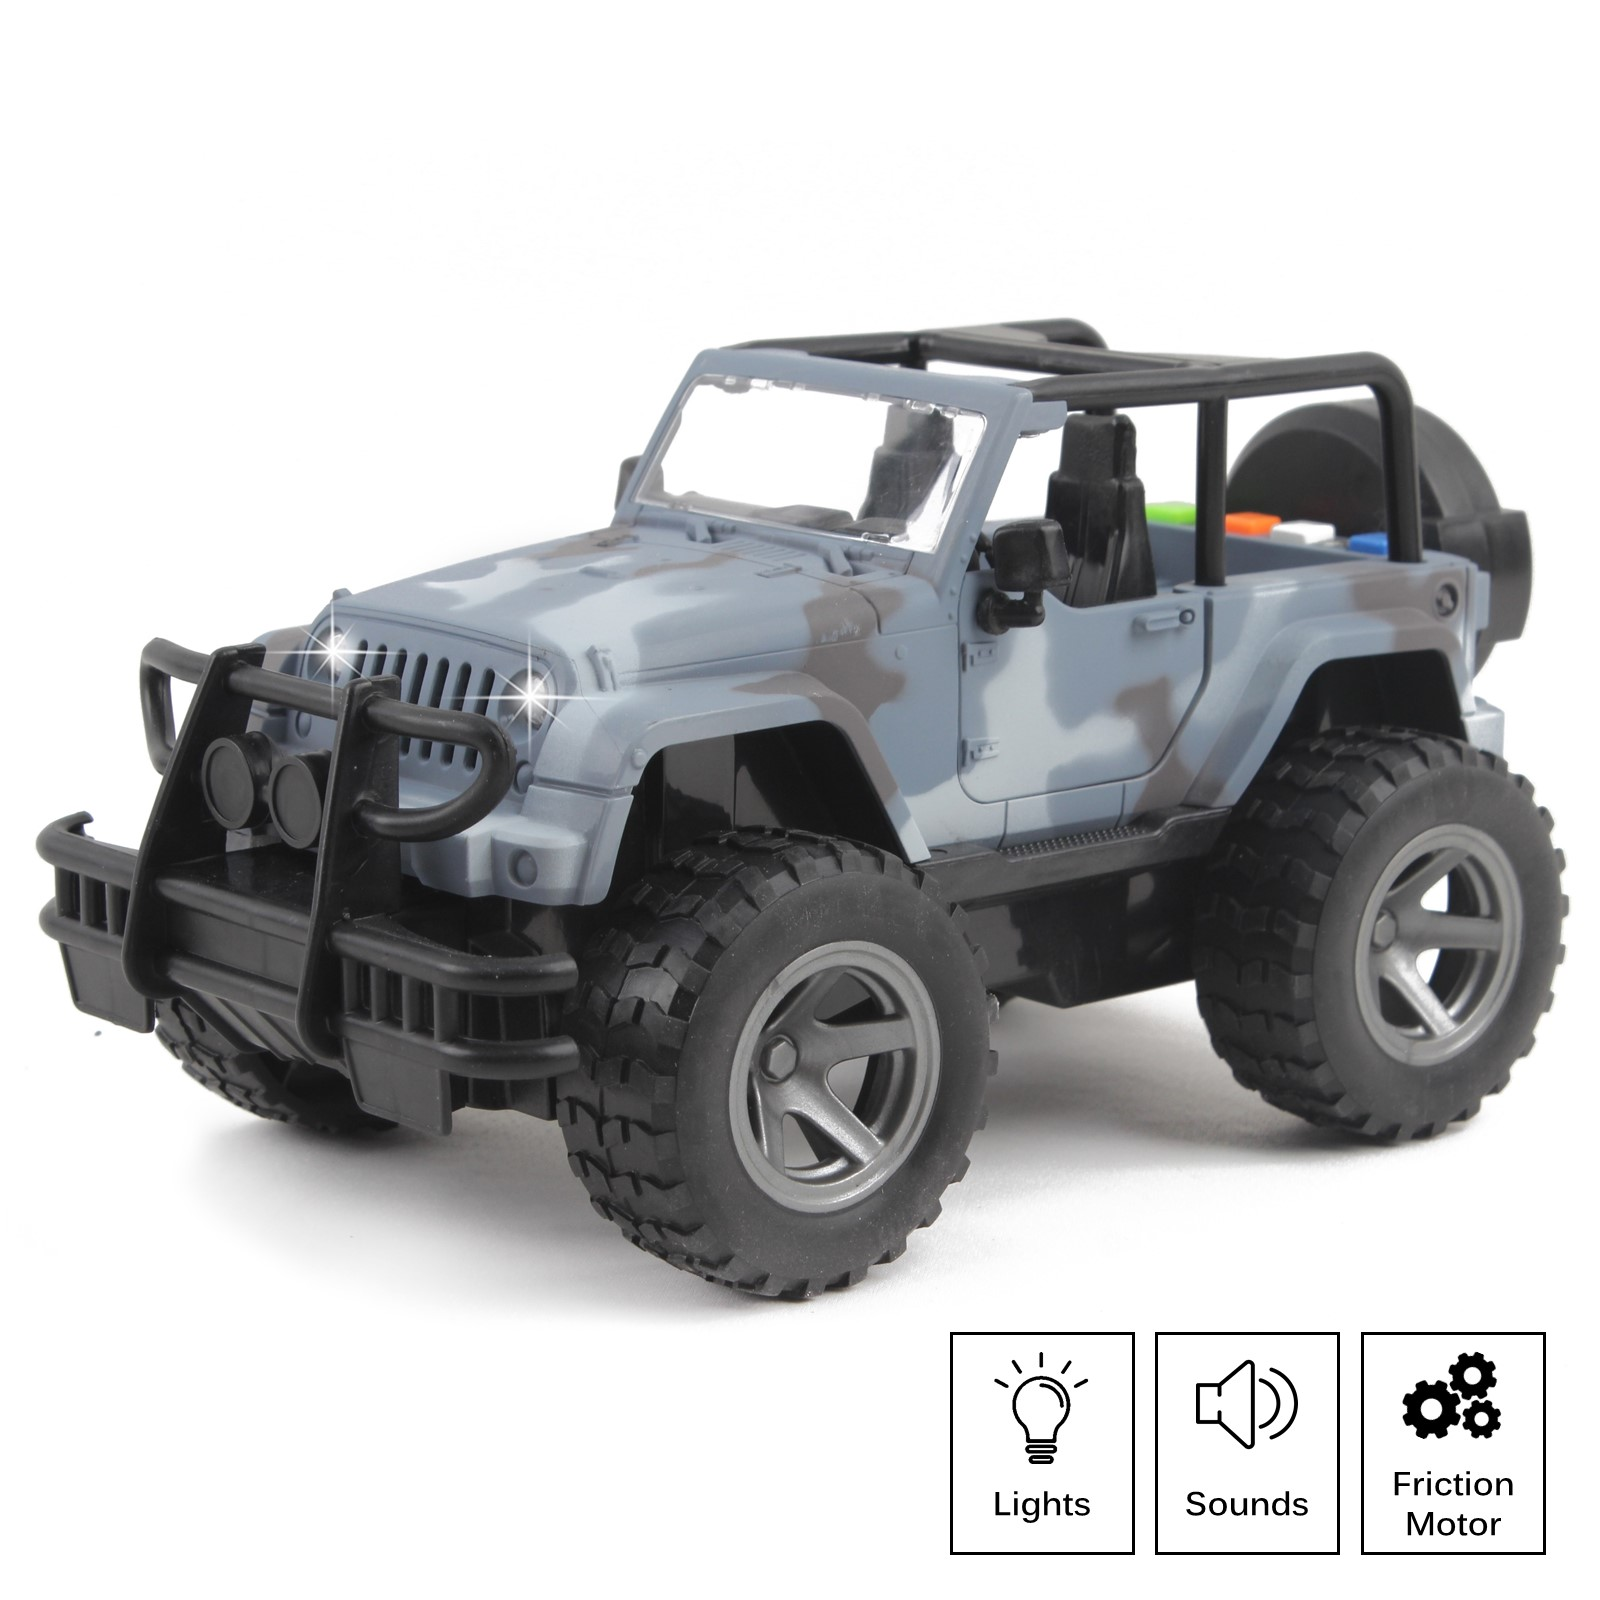 Off-Road Military Truck Friction Powered SUV 1:16 Scale With Lights And Sounds Doors Open Kids Push And Go Action Army Toy Vehicle Imagination Play Fighter Car Great Gift For Children Boys Girl